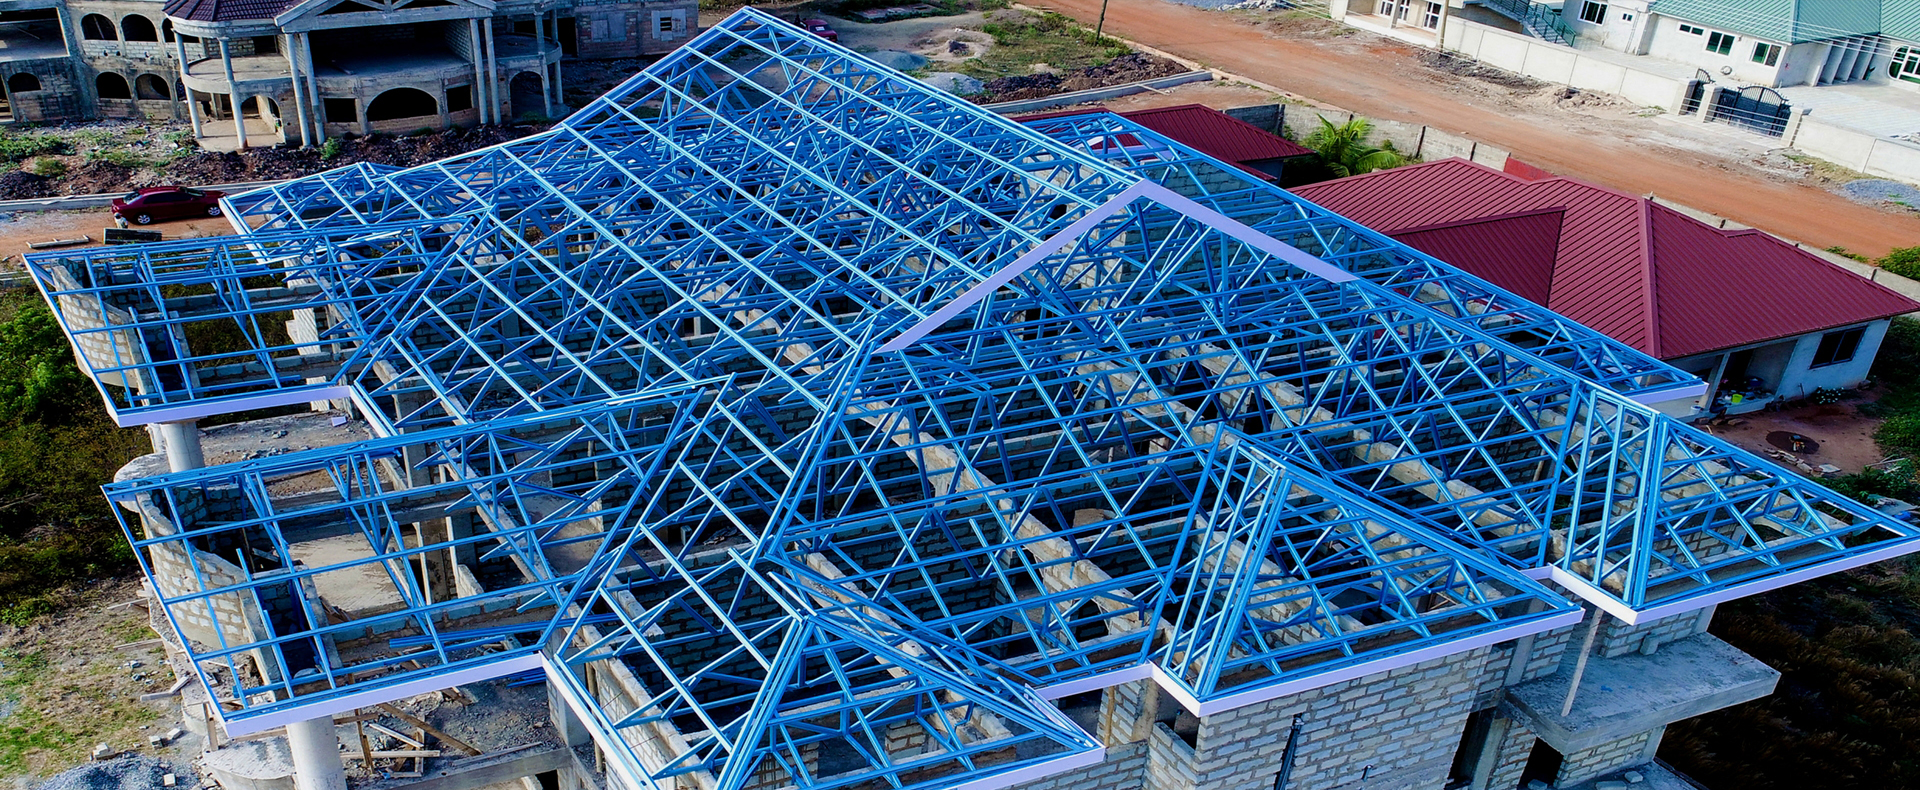 Aluminium and Steel Roofing Truss System in Ghana